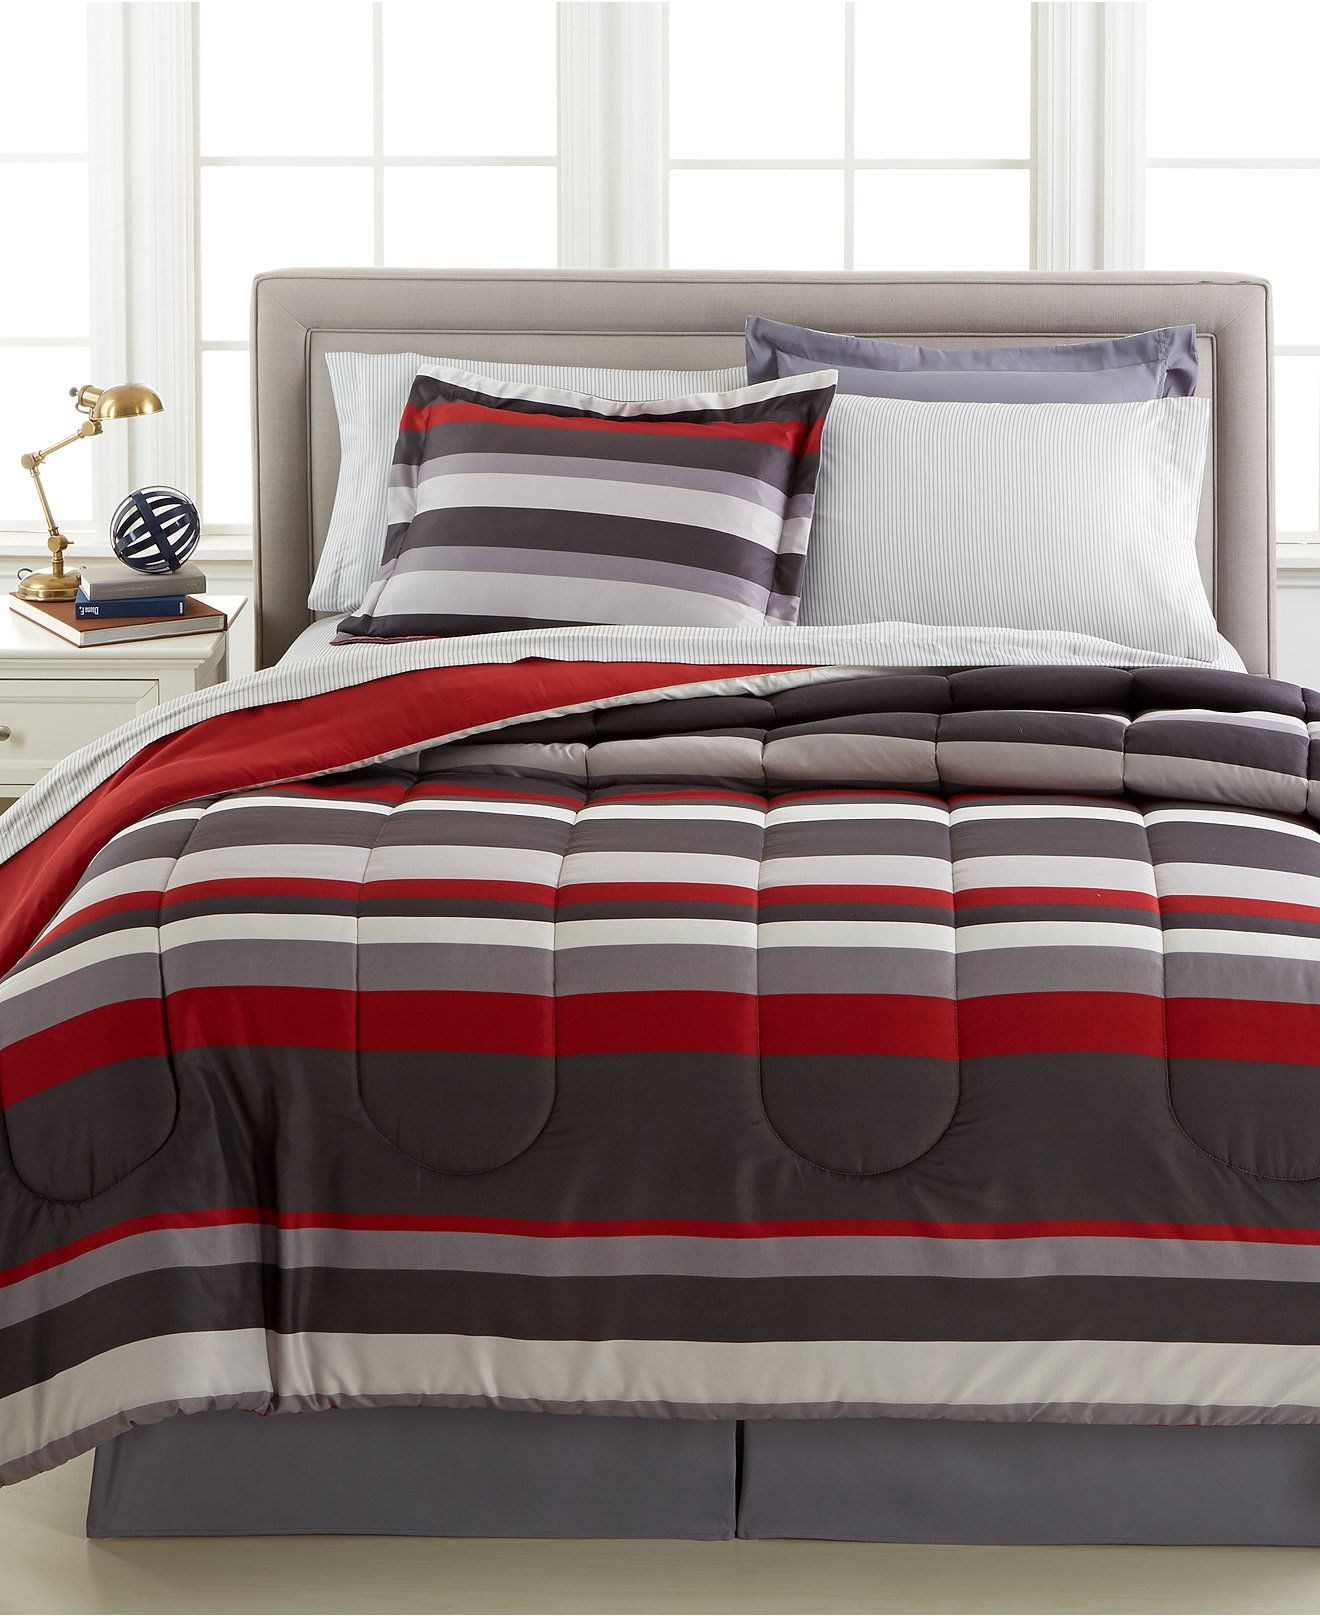 king full of black gray sets size comforter bedspread set red mouse decoration and